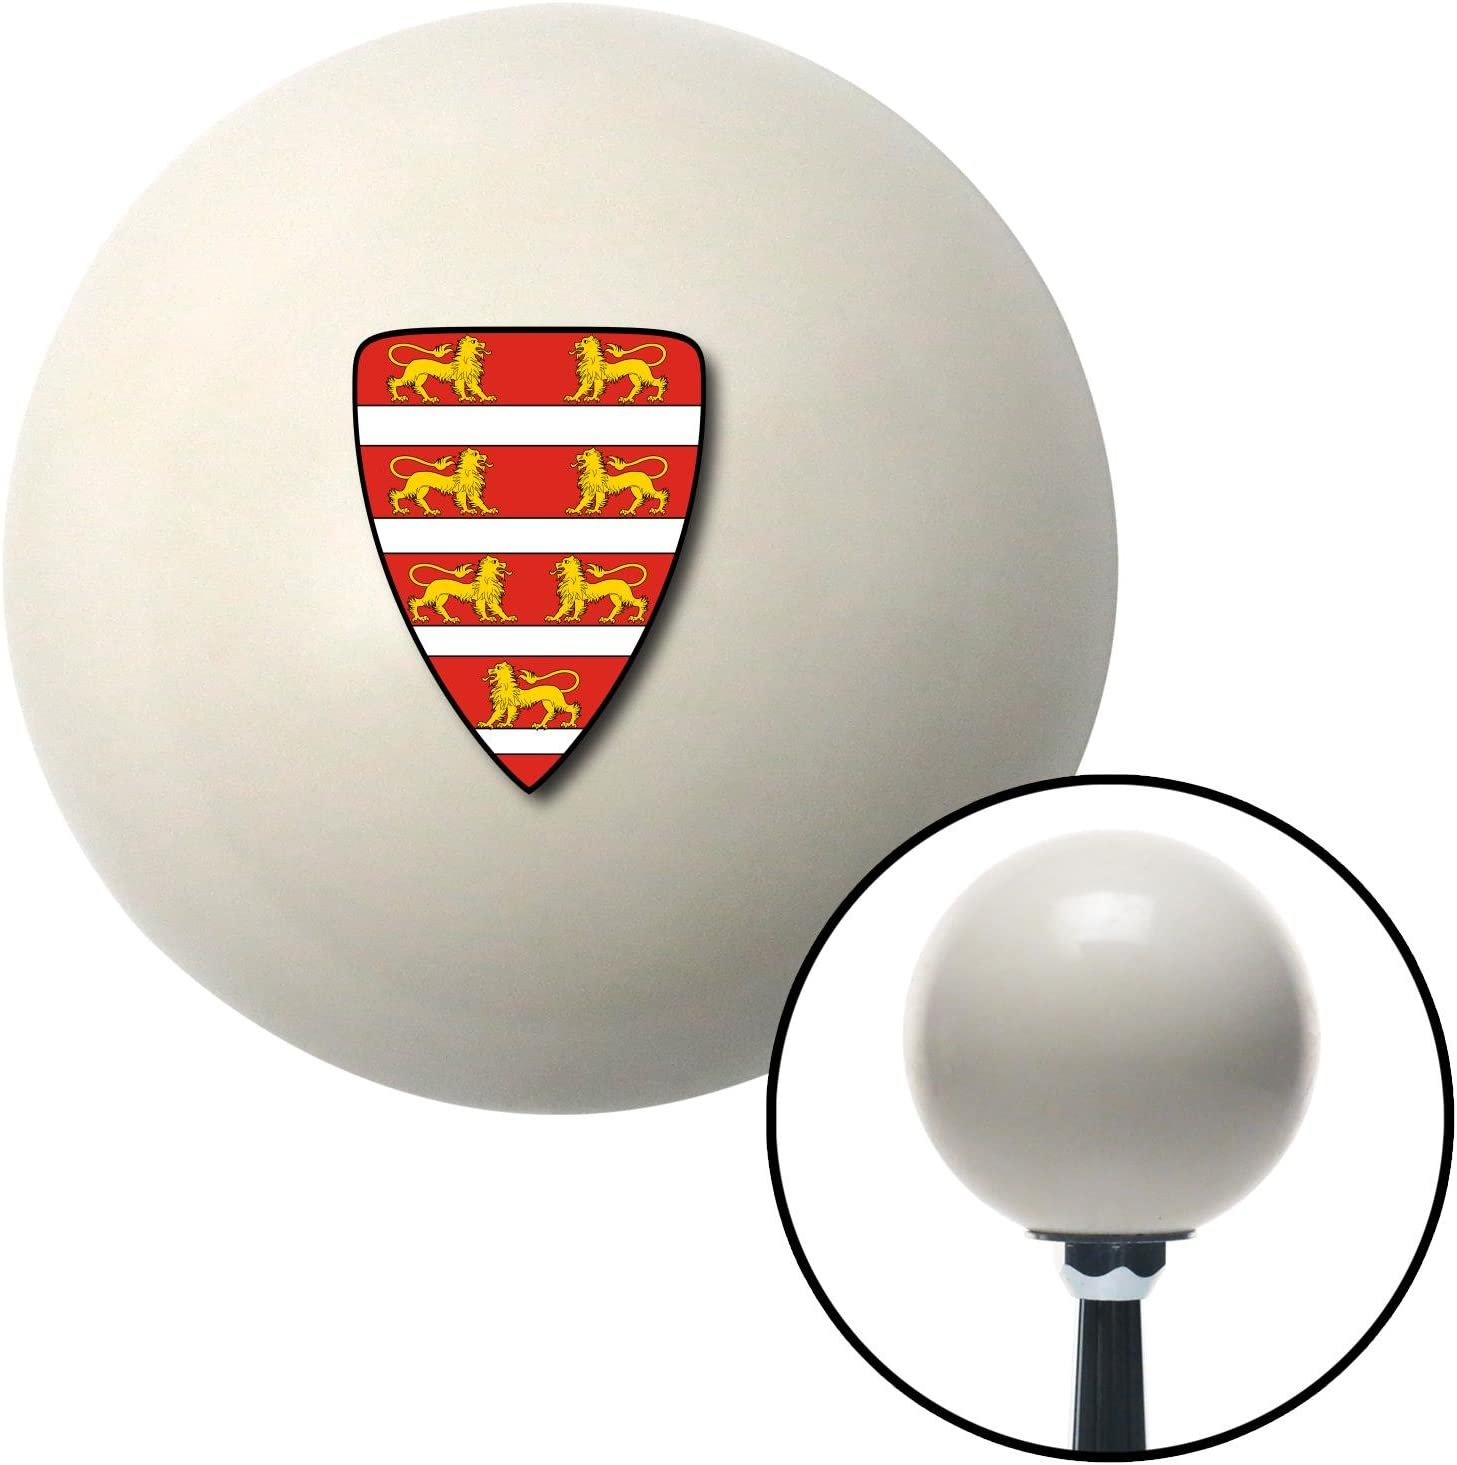 Lions Coat of Arms American Shifter 76118 Ivory Shift Knob with M16 x 1.5 Insert